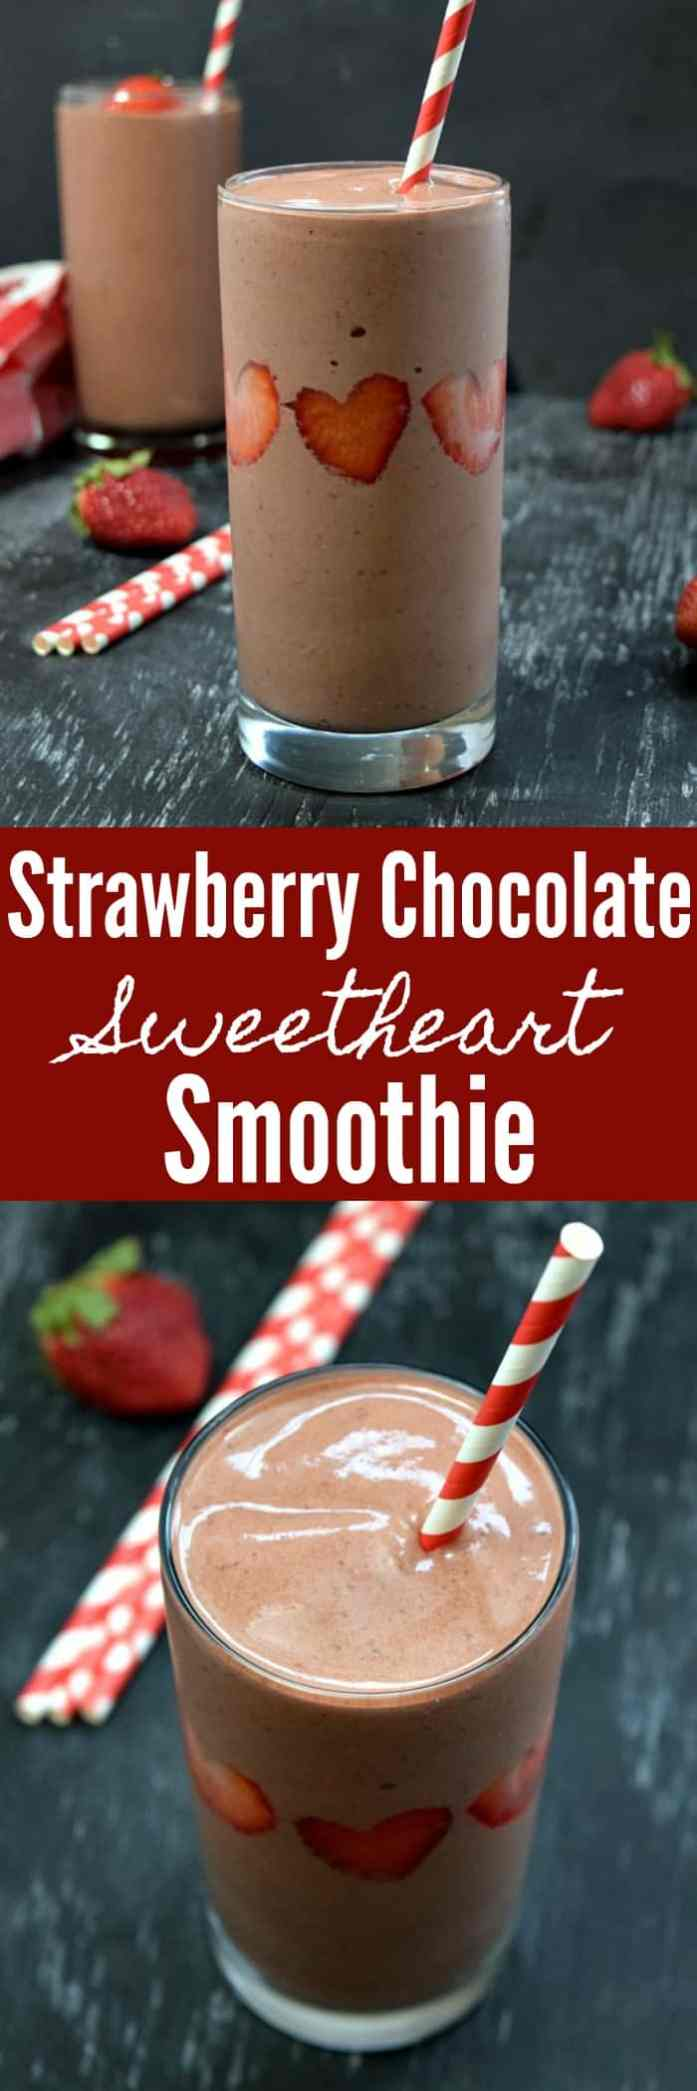 Strawberry Chocolate Sweetheart Smoothie Pinterest Pin #smoothie #strawberry #chocolate #strawberrychocolate #valentinesday